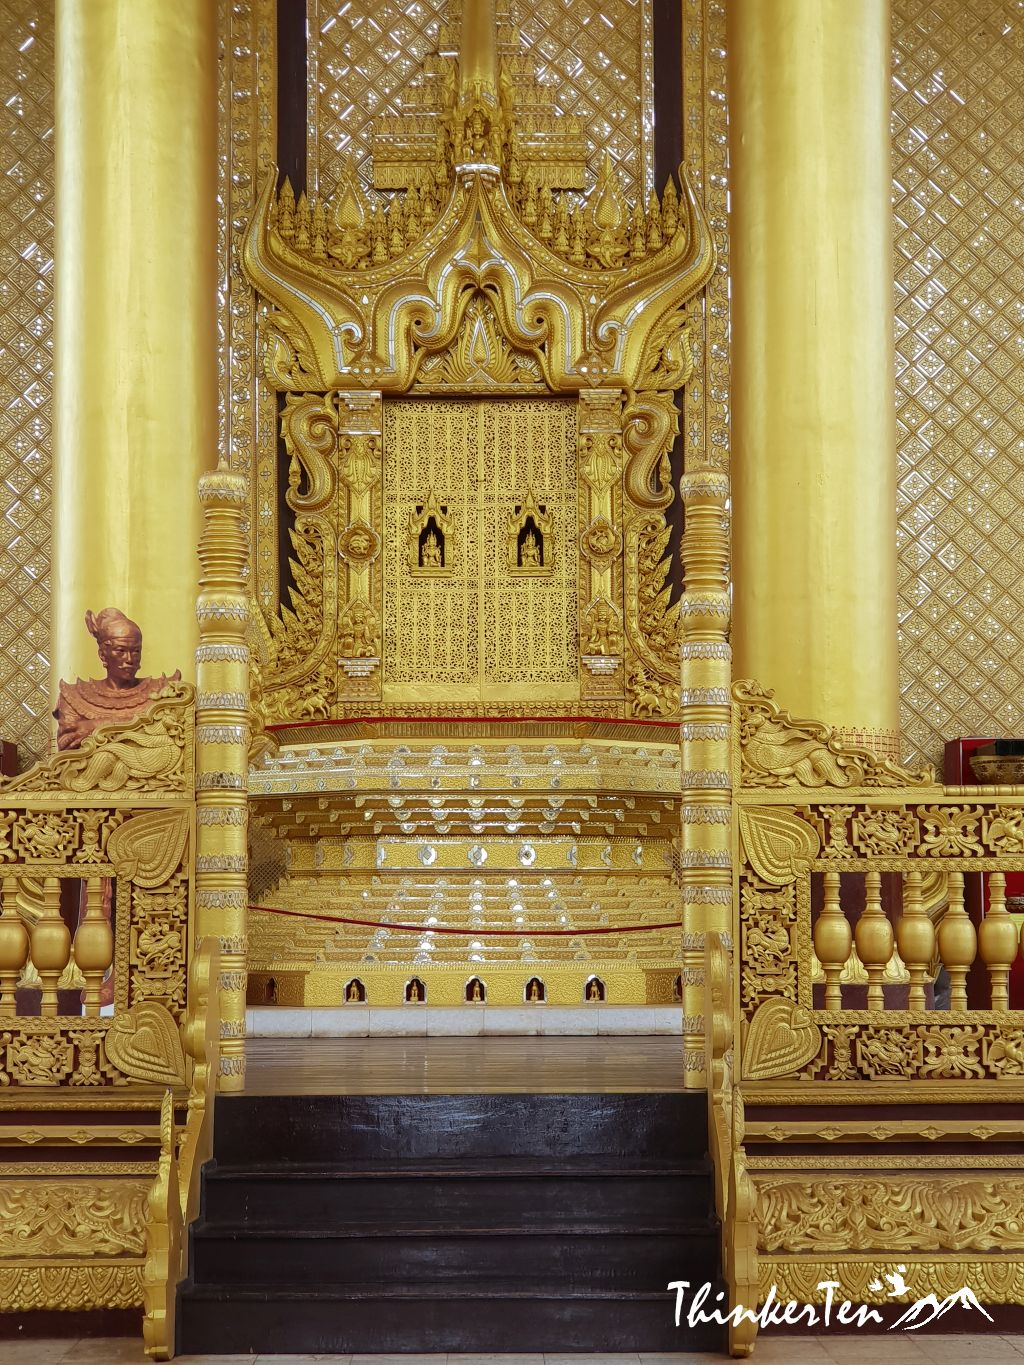 Myanmar : The Golden Palace in Bago - Kanbawzathadi Palace